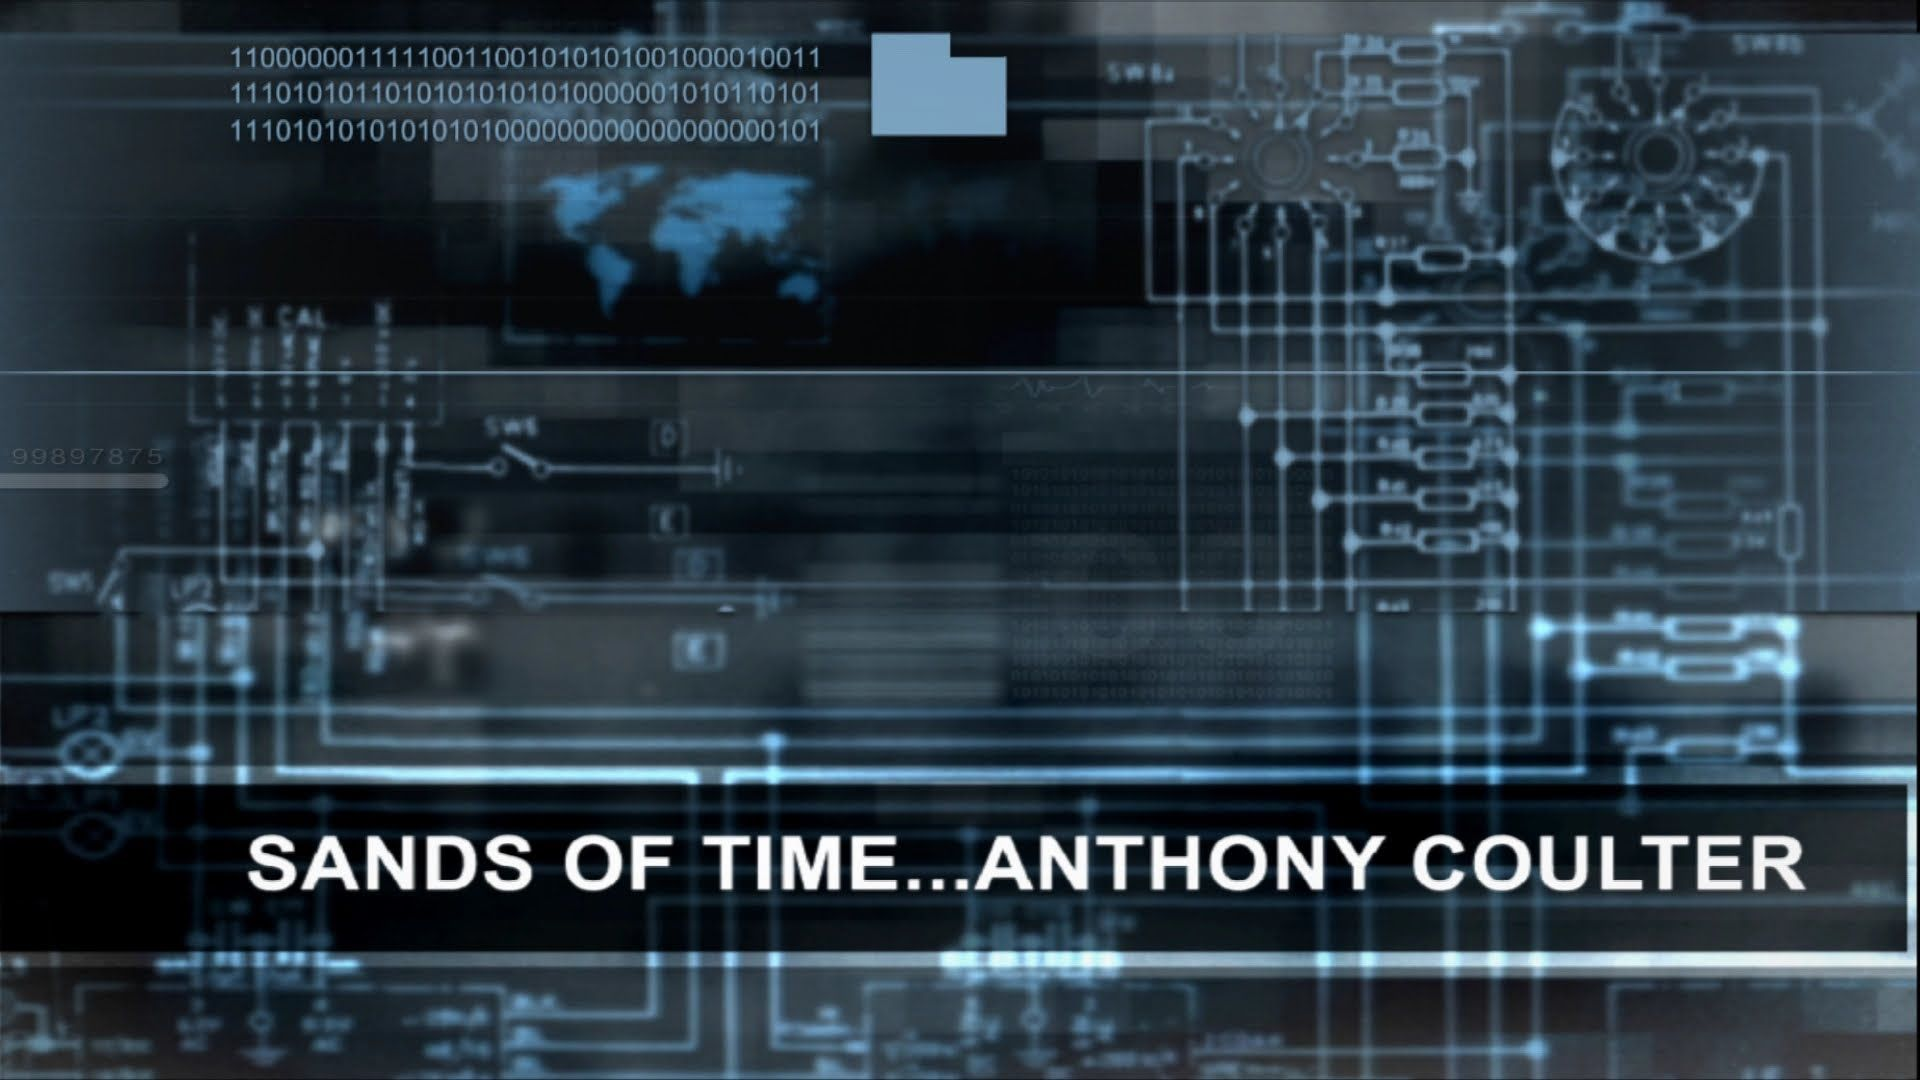 SANDS OF TIME   ANTHONY COULTER